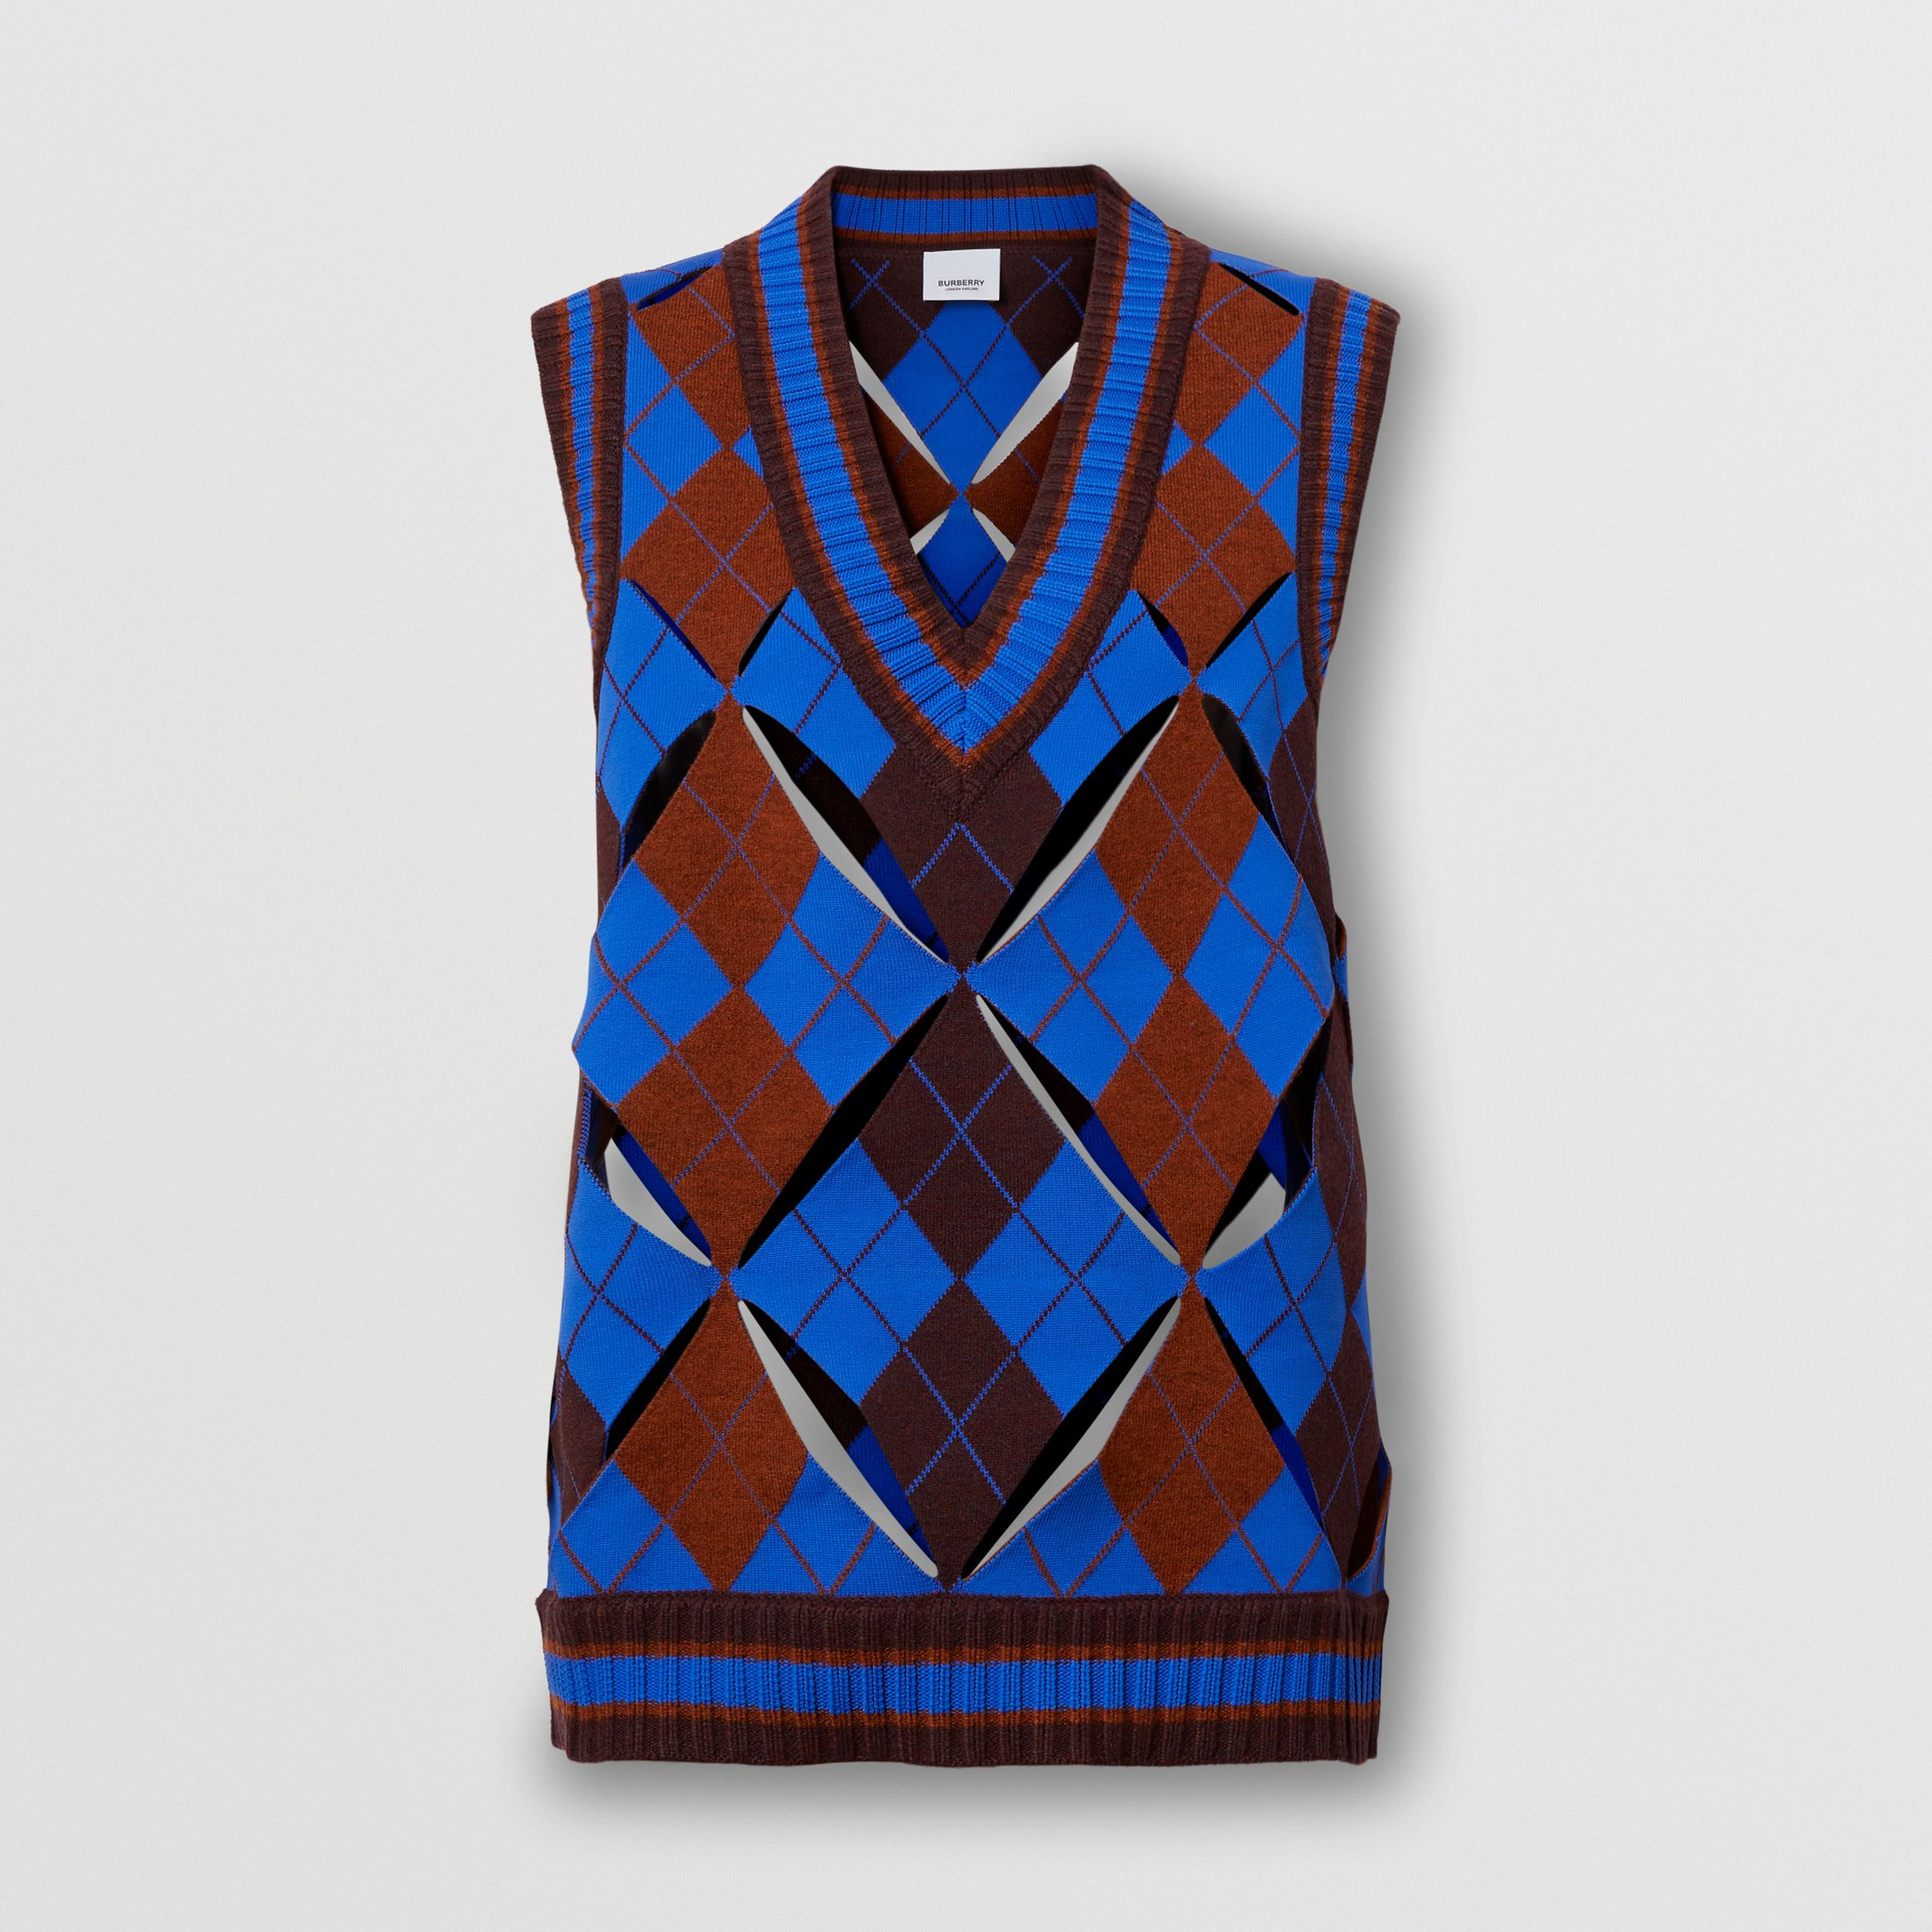 Cut-out Detail Argyle Technical Wool Jacquard Vest in Bright Blue - Women | Burberry Hong Kong S.A.R. - 1